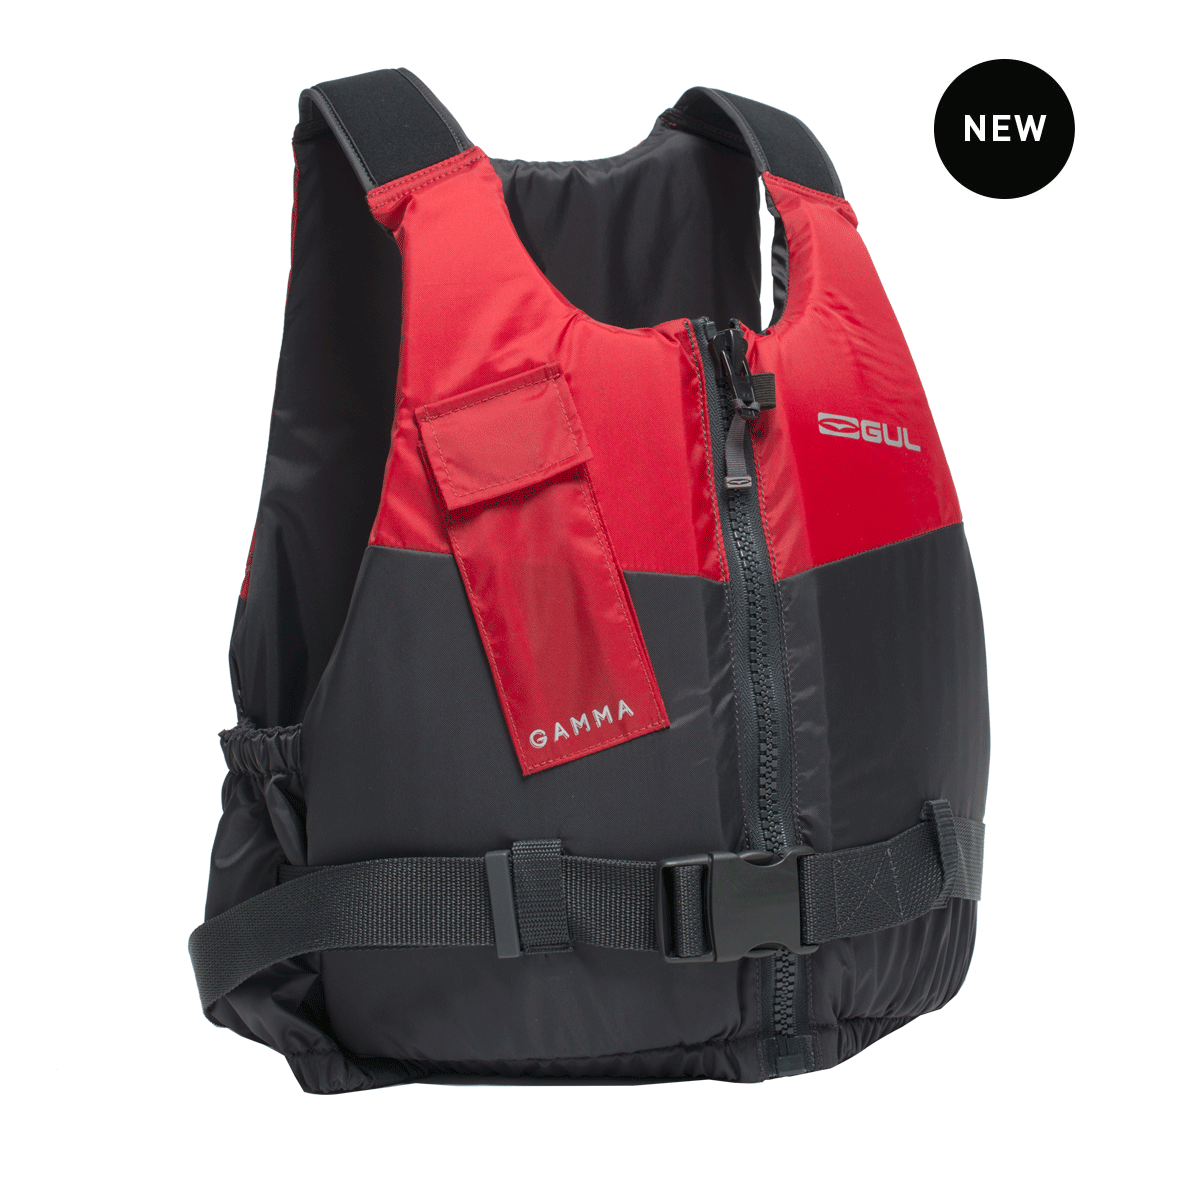 Gul Gamma 50n Buoyancy Aid    Gm0380-A9